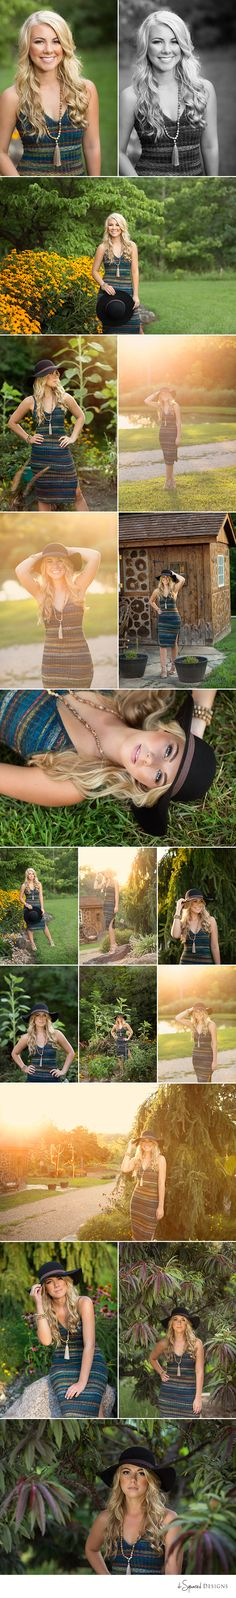 d-Squared Designs St. Louis, MO Senior Photography. Senior girl summer session. Golden hour. Senior with hat. Hat outfit. Pretty girl.